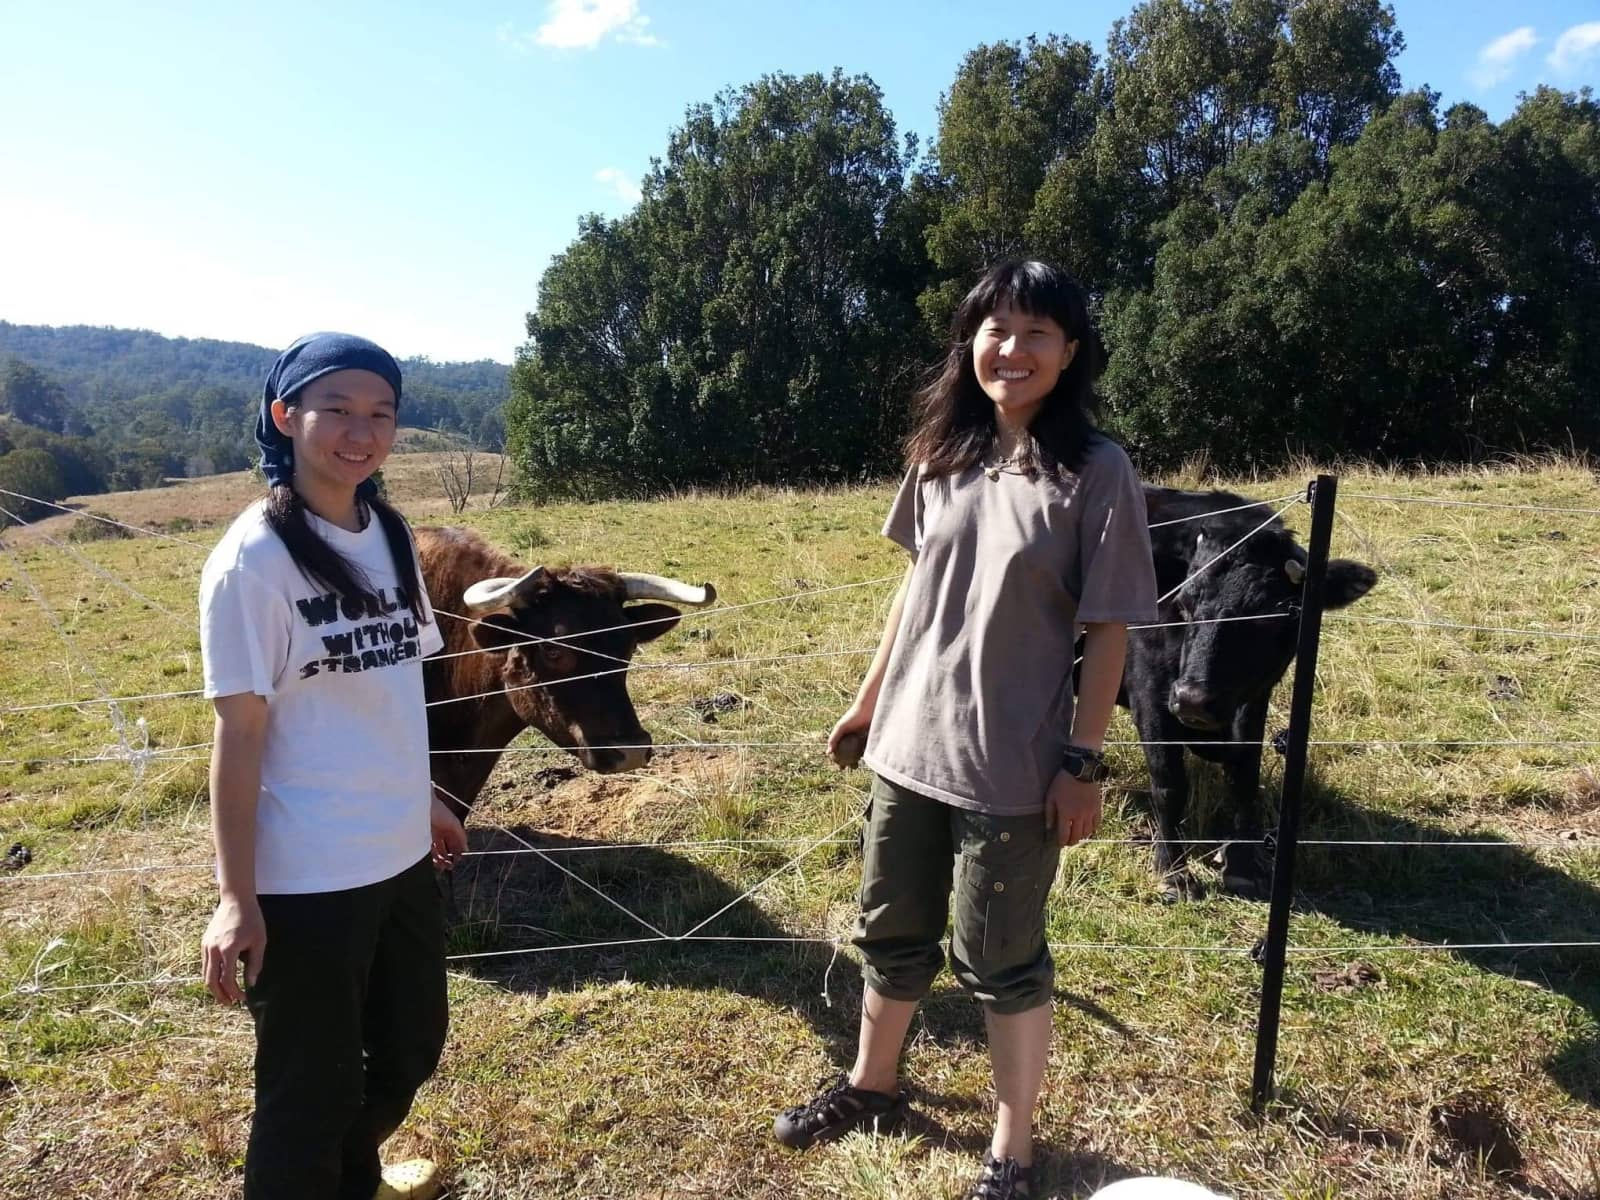 Yu shan & Shan yi from Sydney, New South Wales, Australia